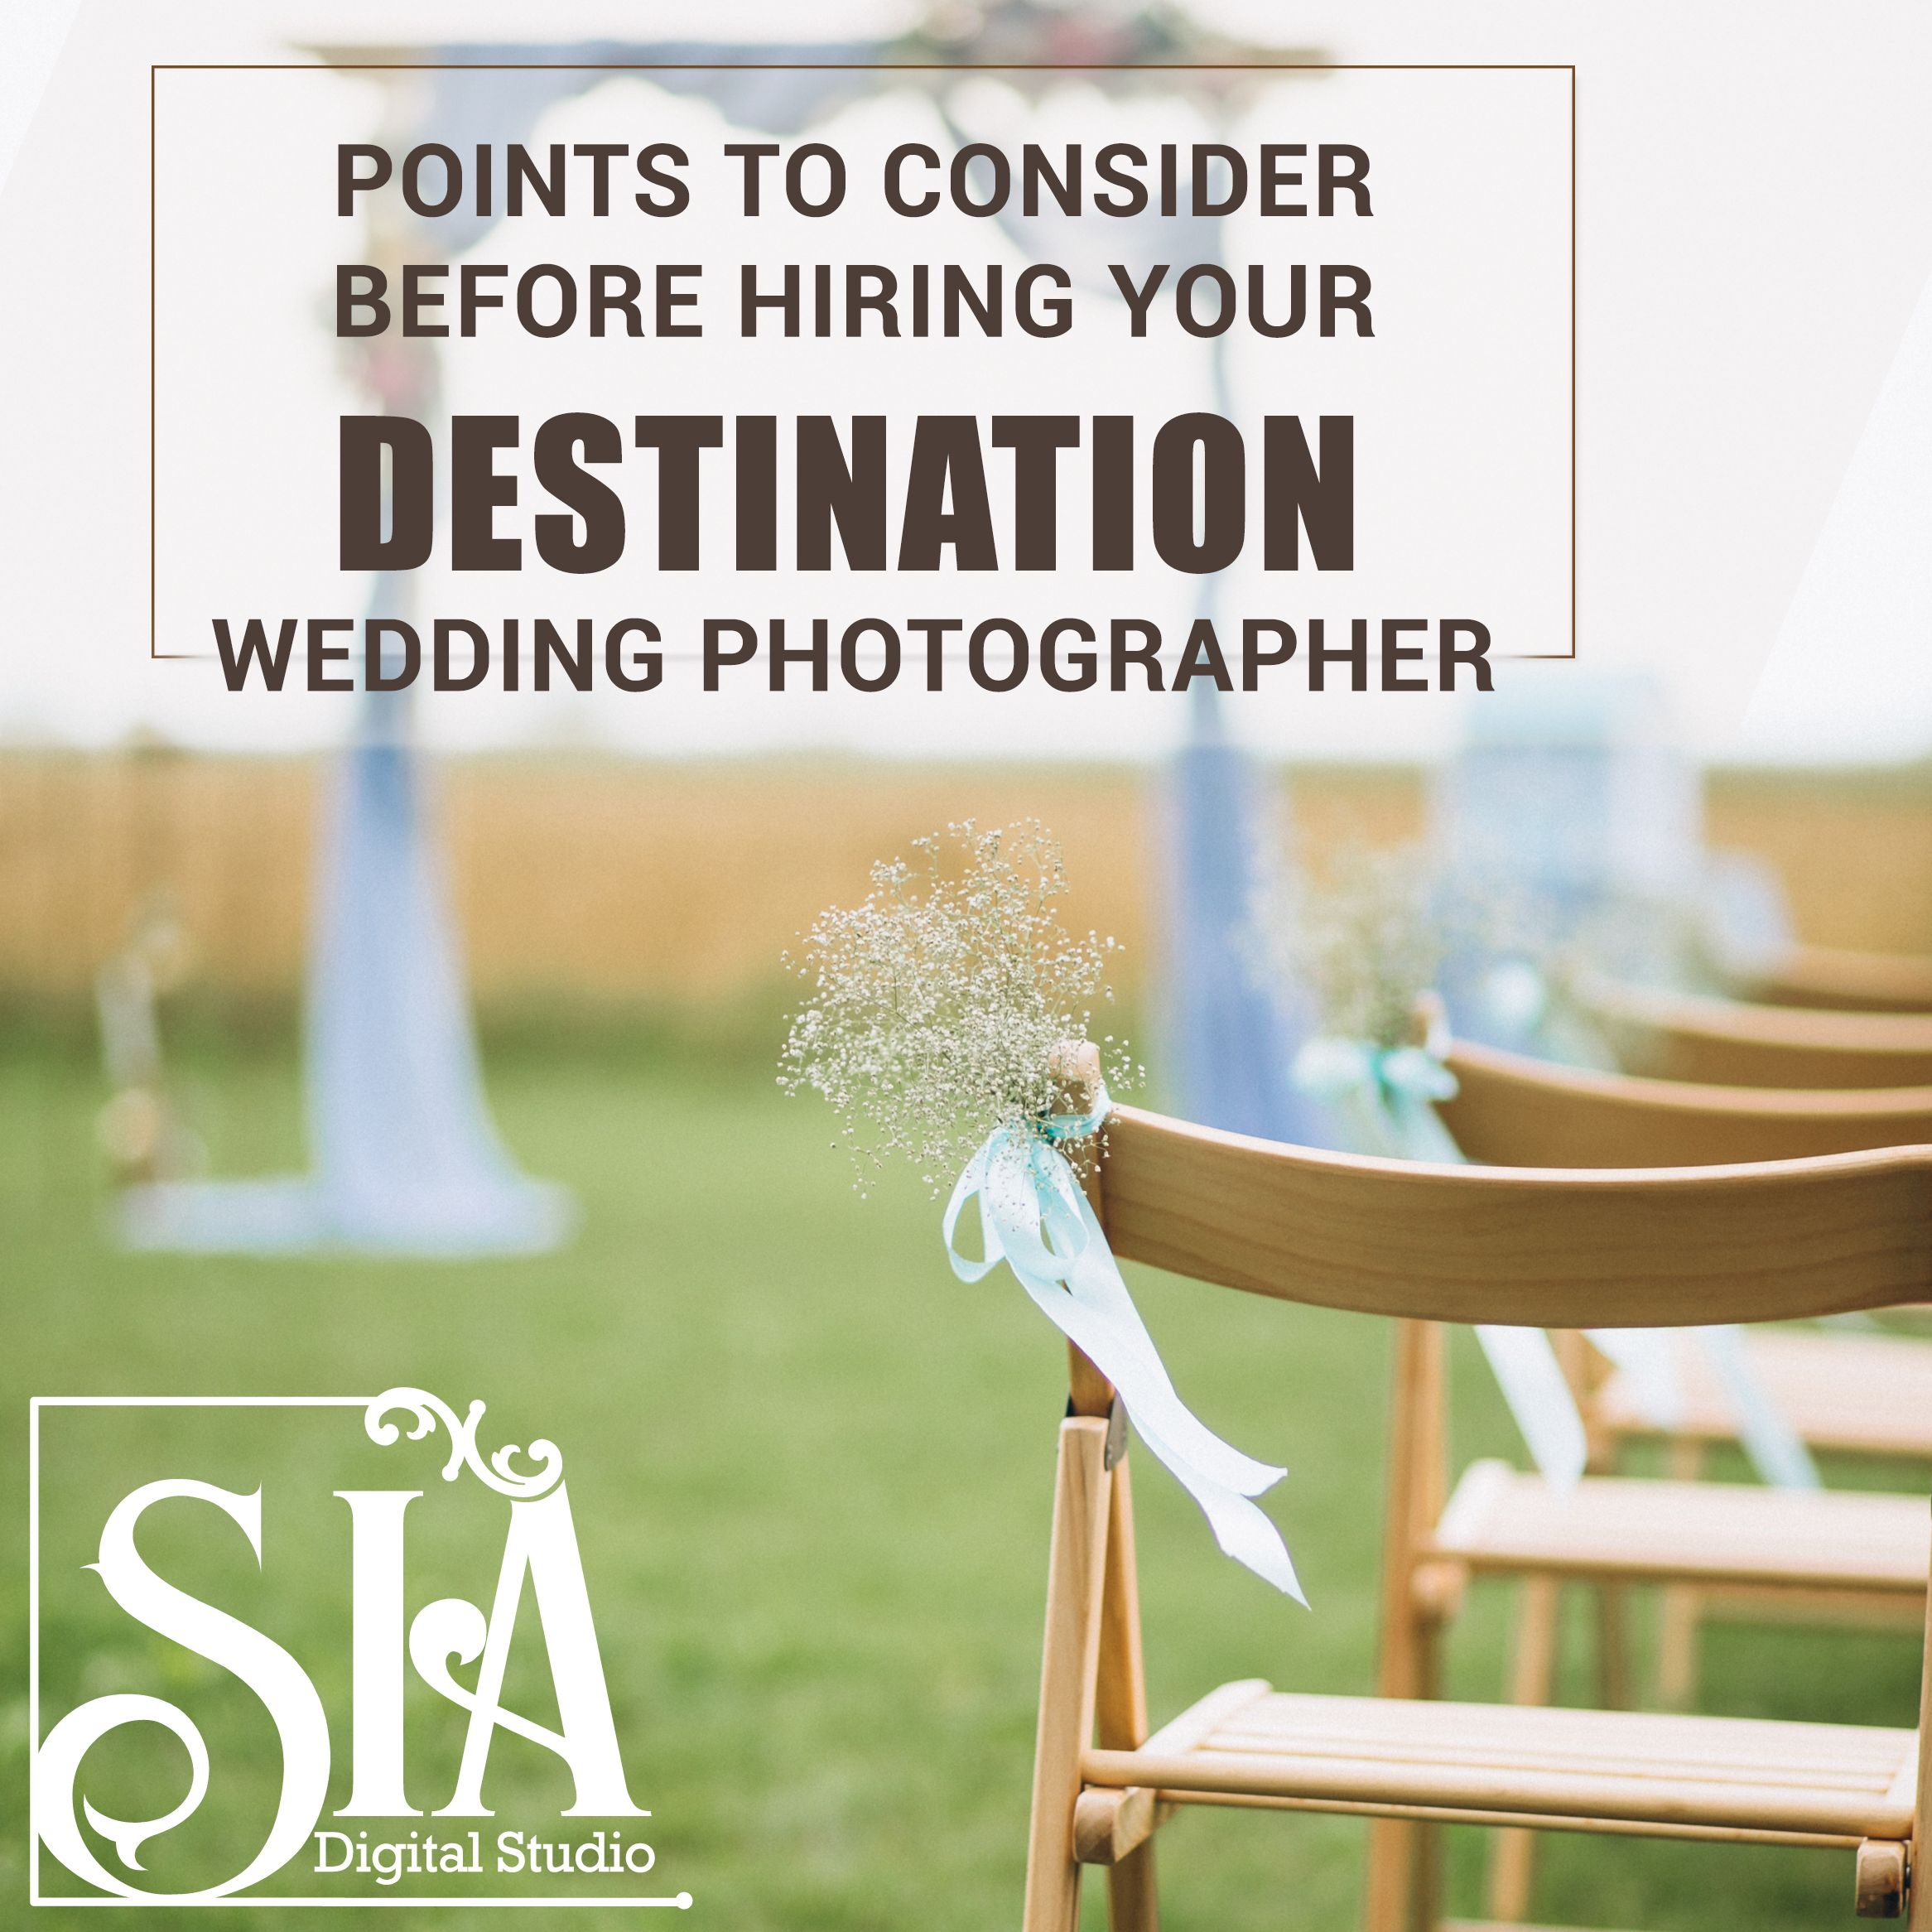 Most couples choose a destinationwedding to have the